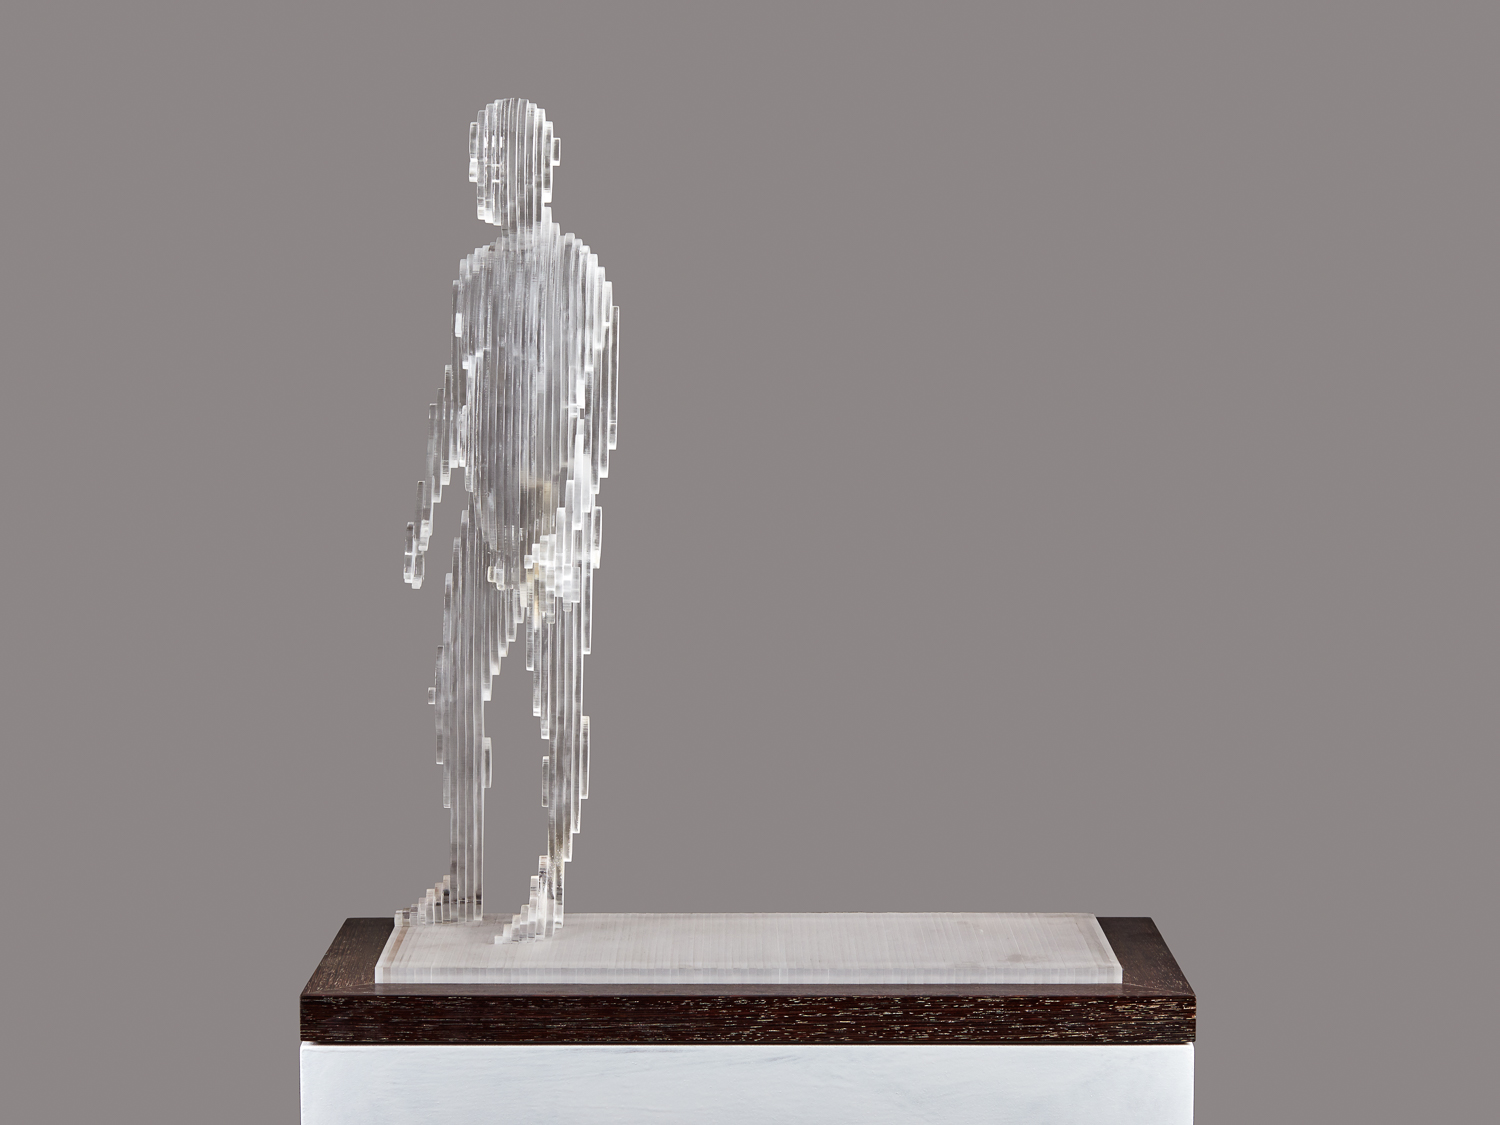 2015 Me V 50cm x 45cm x 20cm extruded acrylic on wenge base .jpg